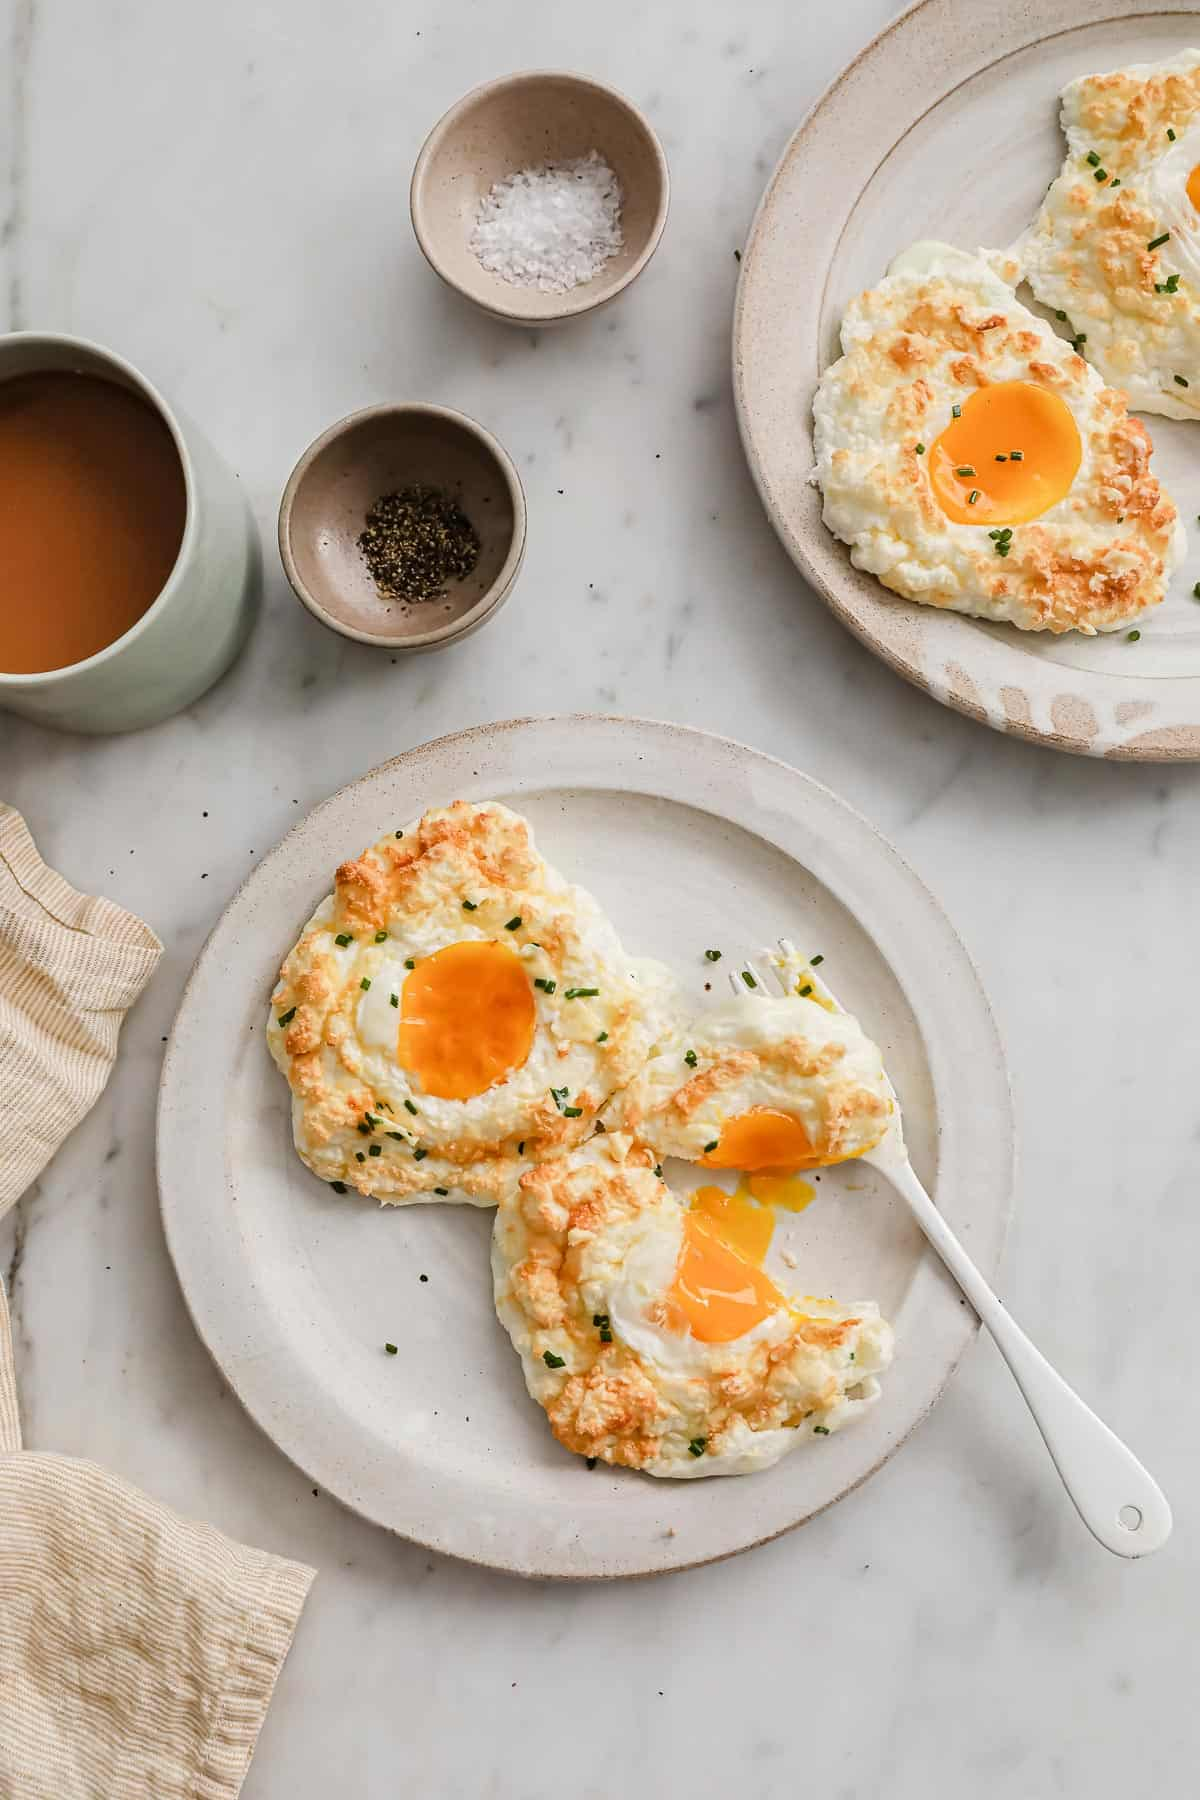 2 baked egg clouds, topped with chives, on a white ceramic plate with a fork